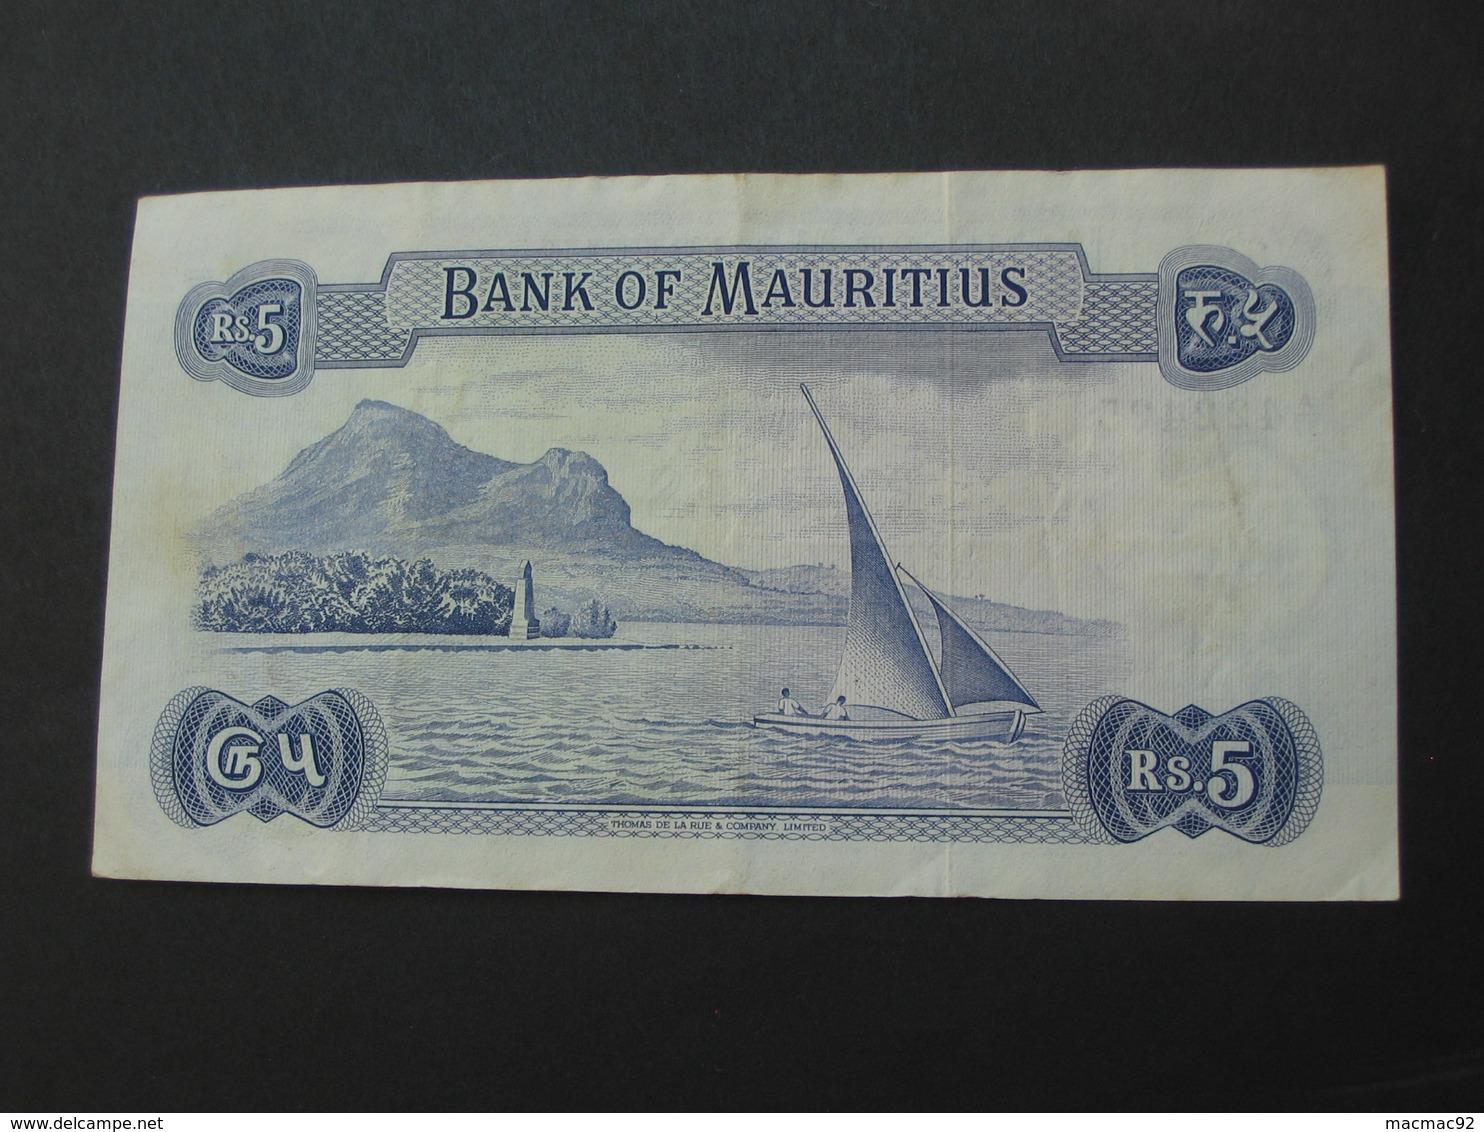 50 Fifty - Rupees 1967 - ILE MAURICE - Bank Of Mauritius  **** EN ACHAT IMMEDIAT ***** - Maurice